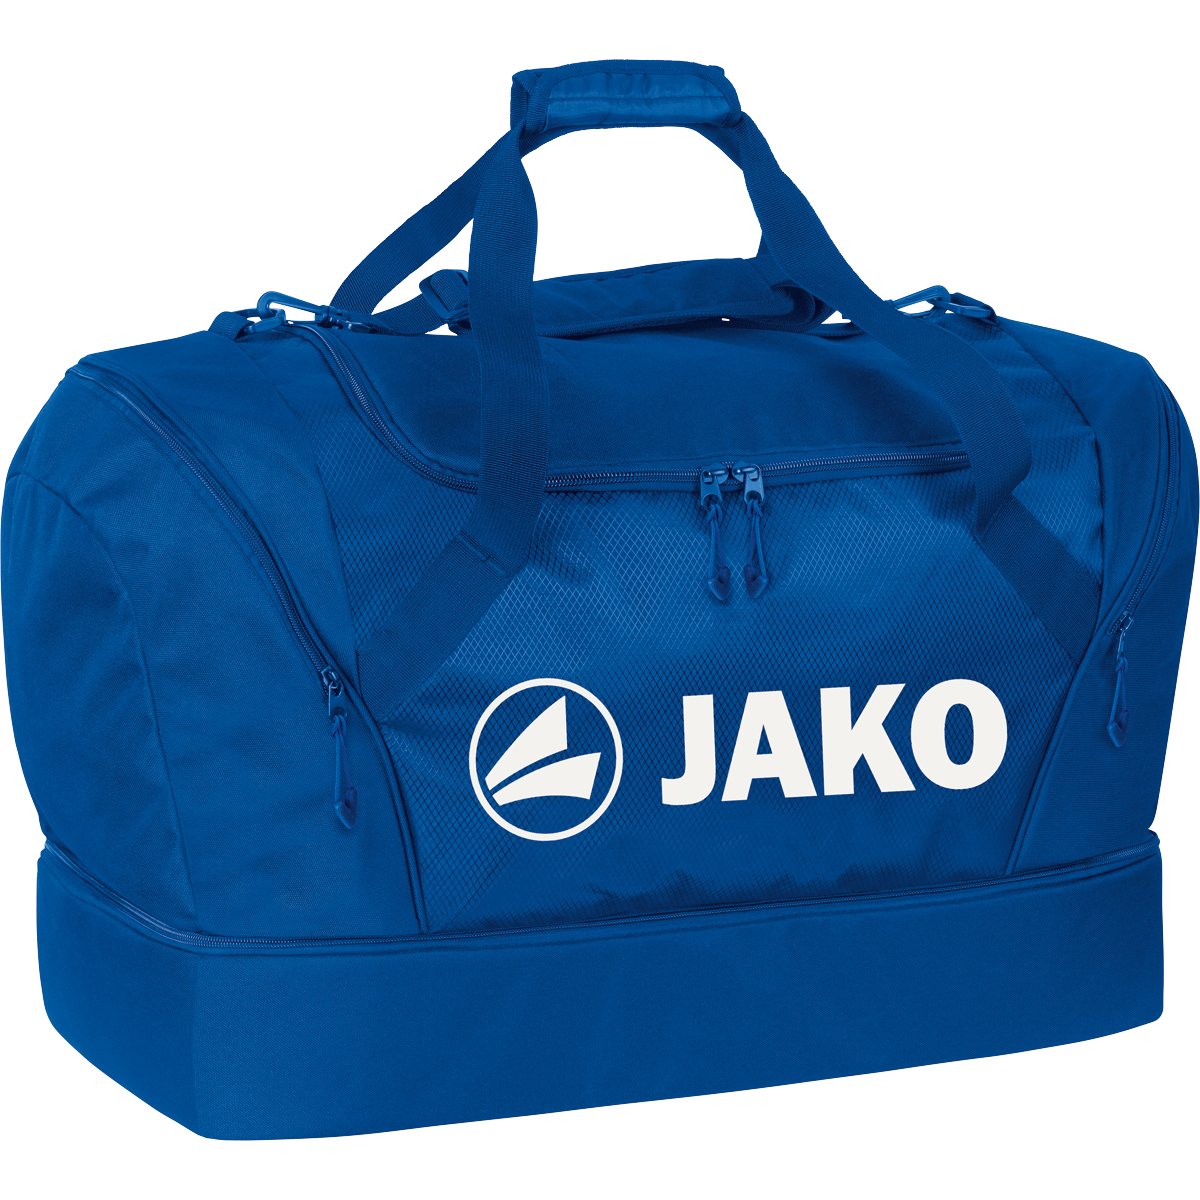 "JAKO sports bag ""JAKO"" - with bottom compartment"